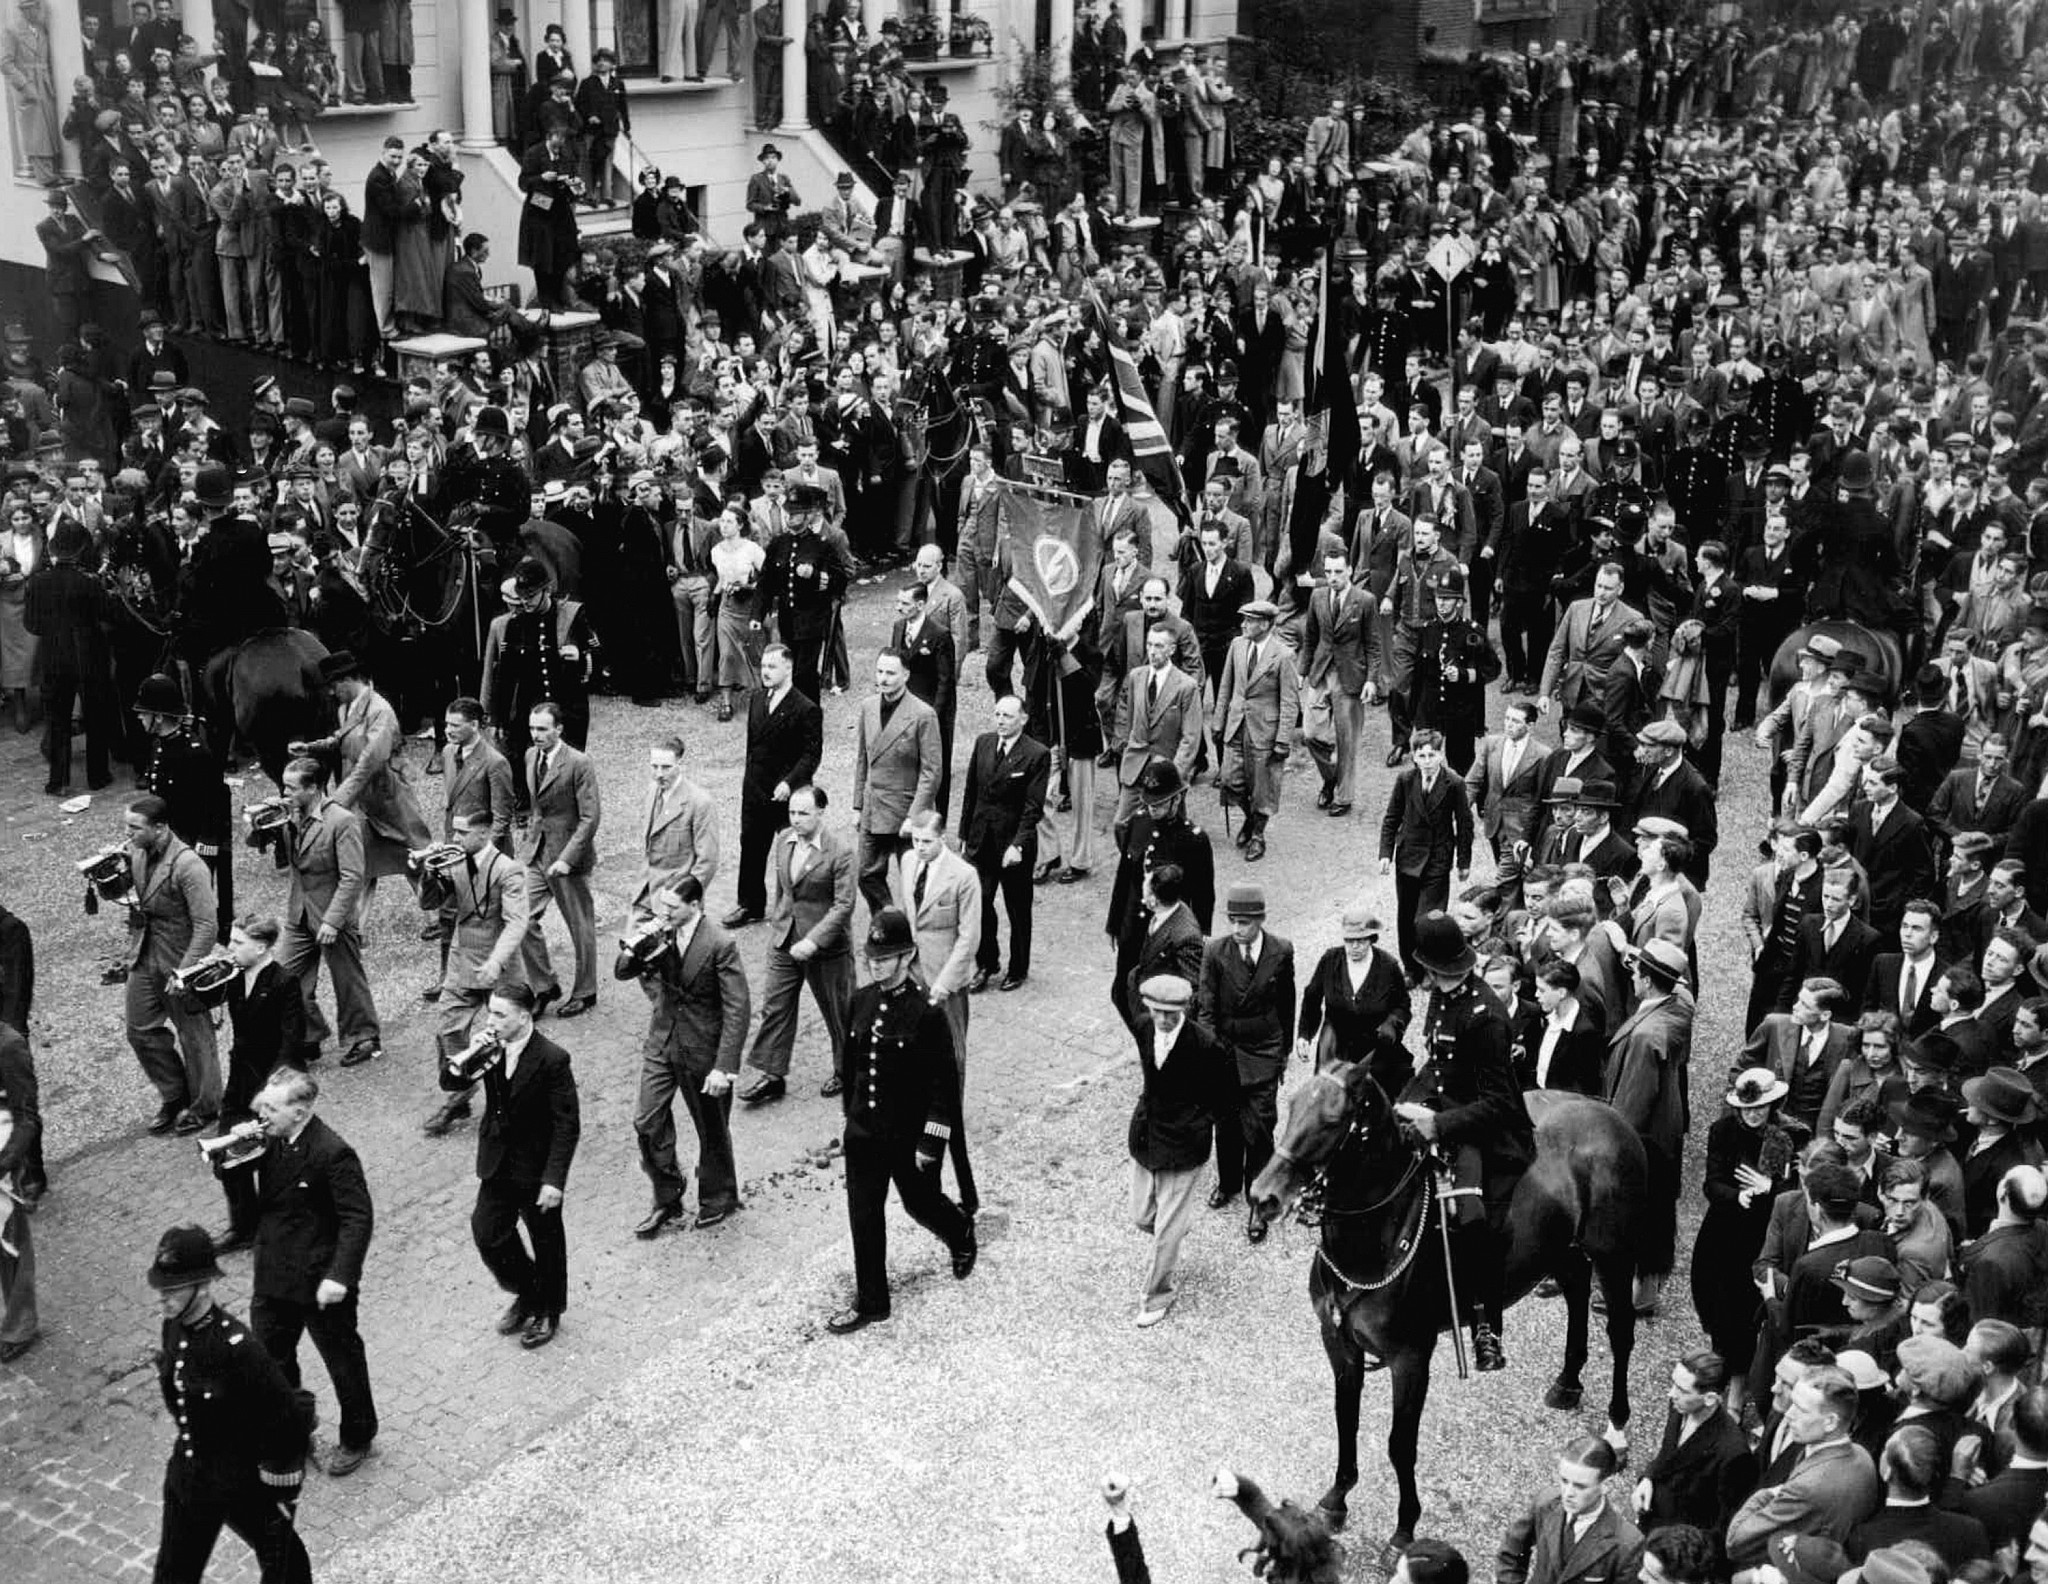 Illustrative: The start of the procession of the British Union of Fascists leaving Islip Street in Kentish Town, London, en route to Trafalgar Square, London, England July 4, 1937. Sir Oswald Mosley is seen in light suit, center of three marchers, immediately in front of the fascist banner. (AP Photo)